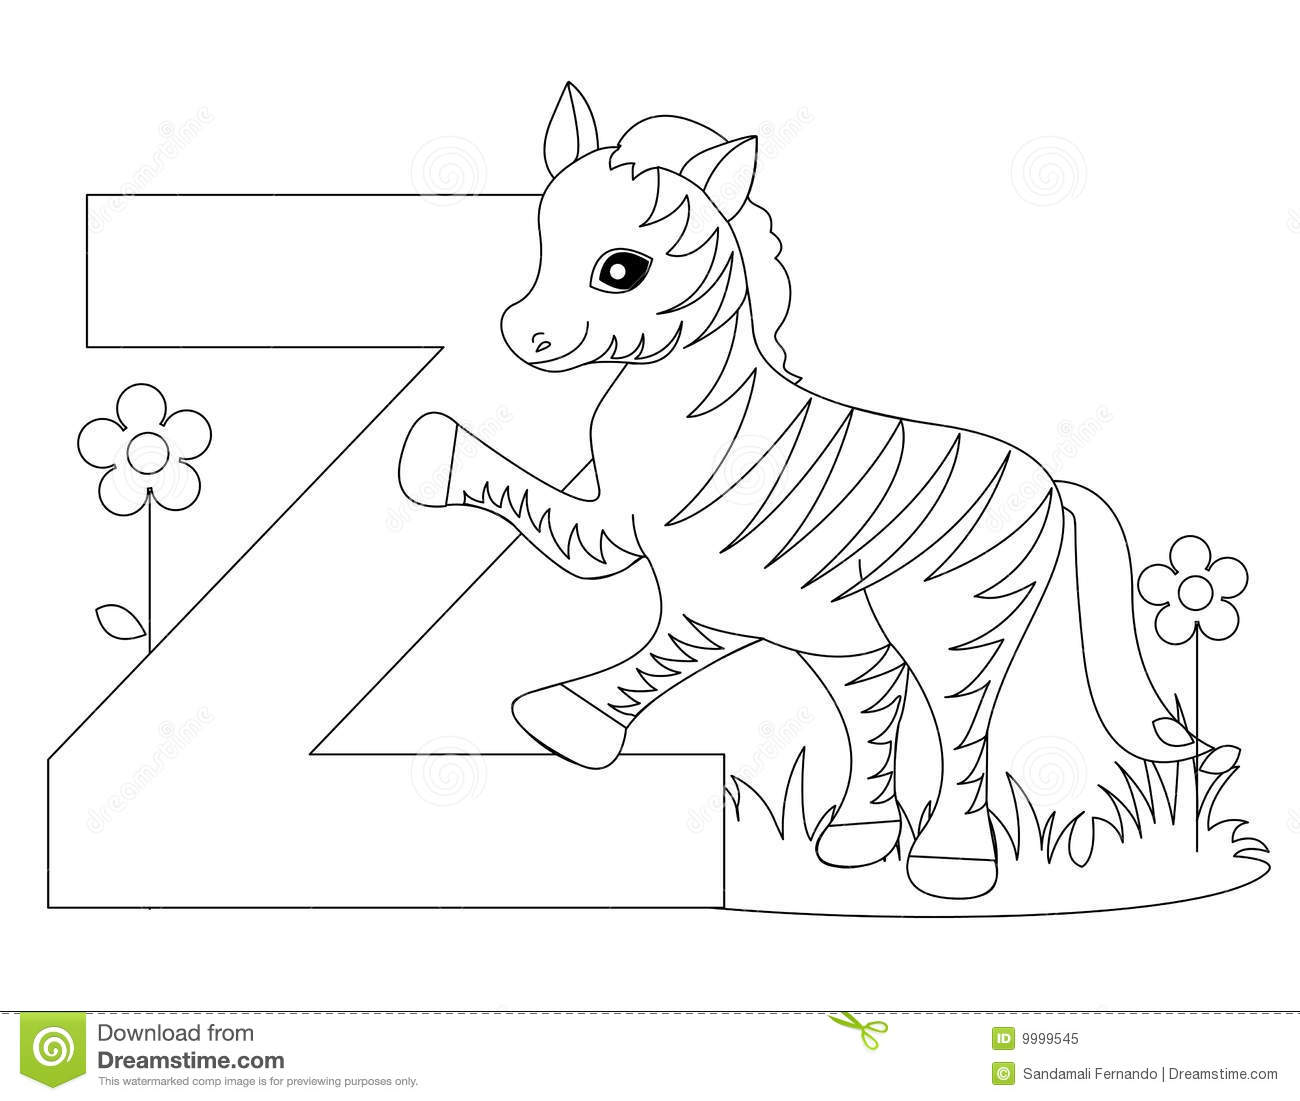 a to z animals coloring pages - animal alphabet z coloring page stock vector